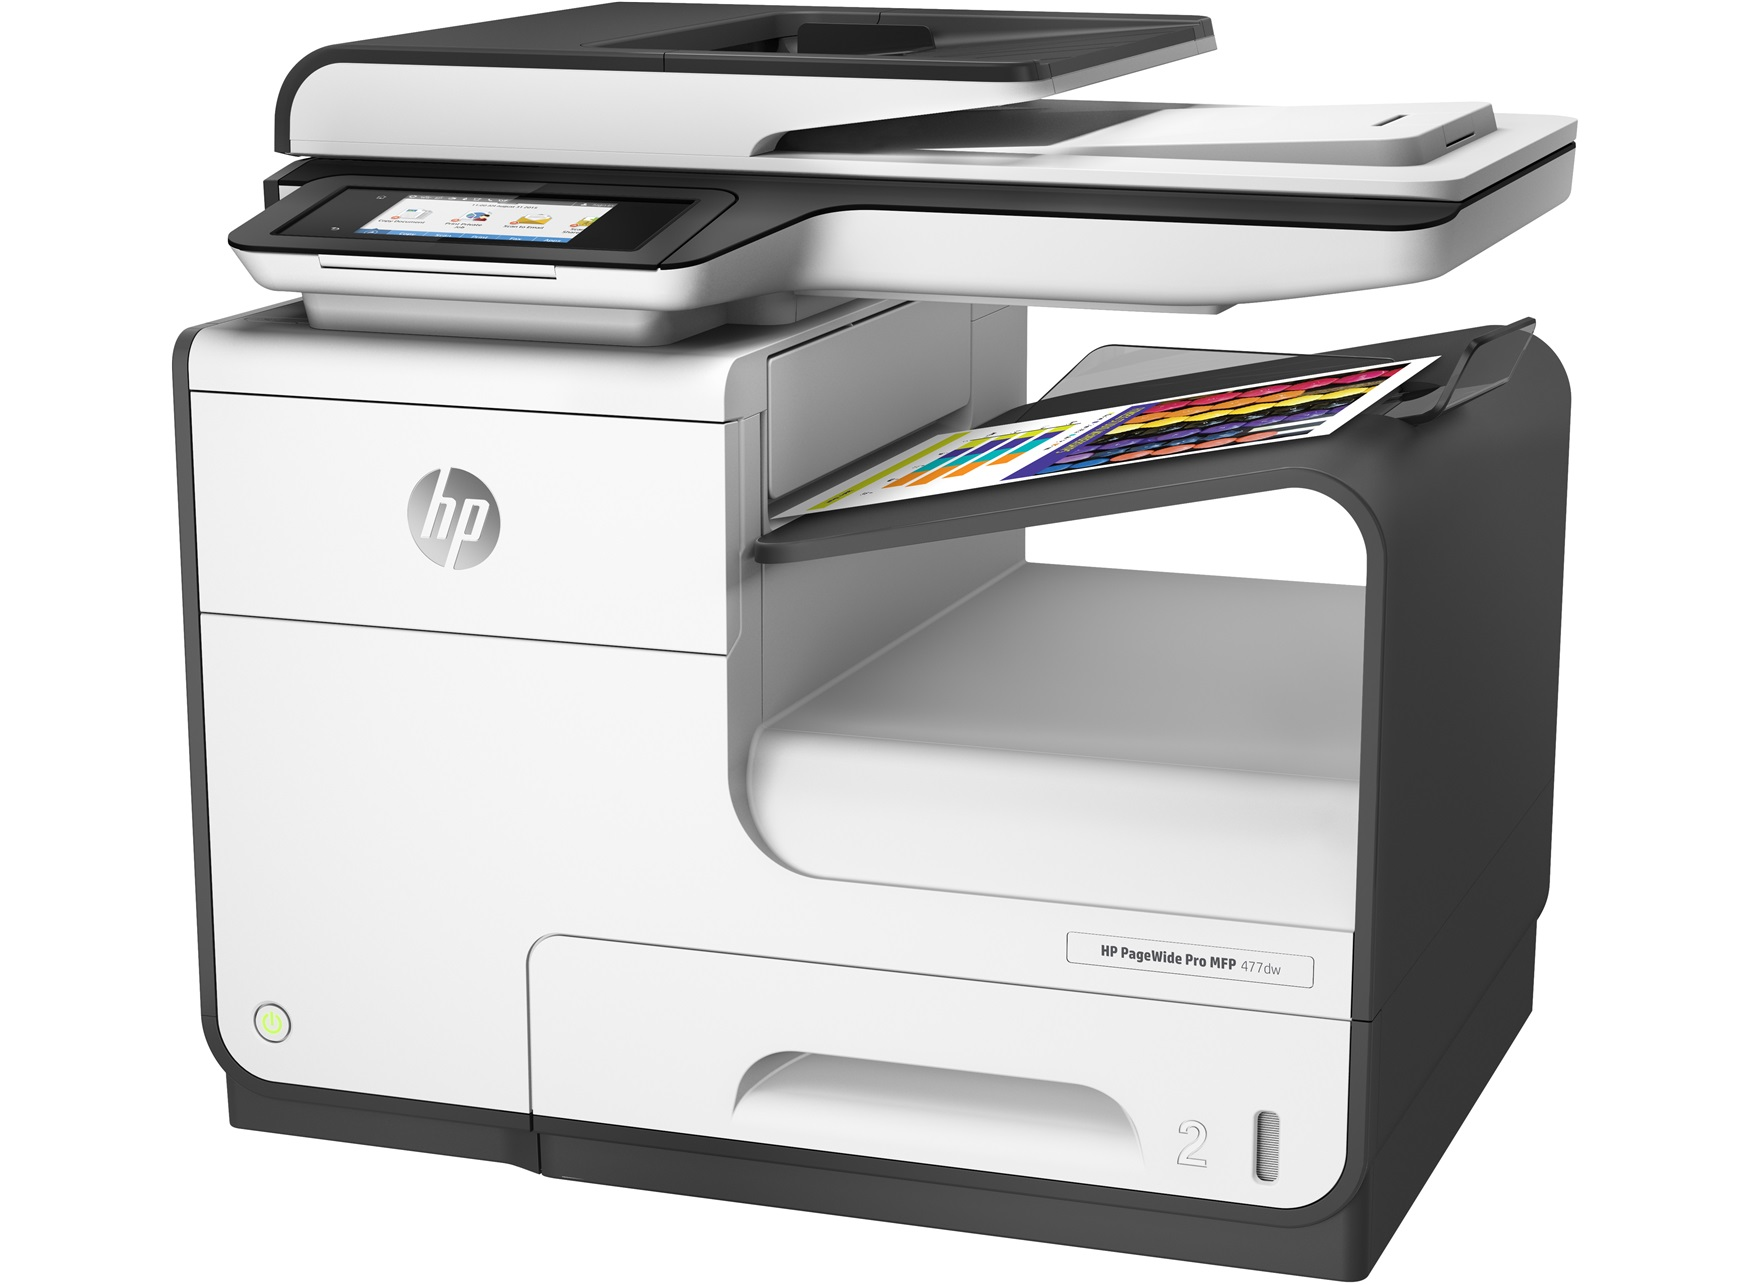 HP PageWide Pro 477dw Multifunction